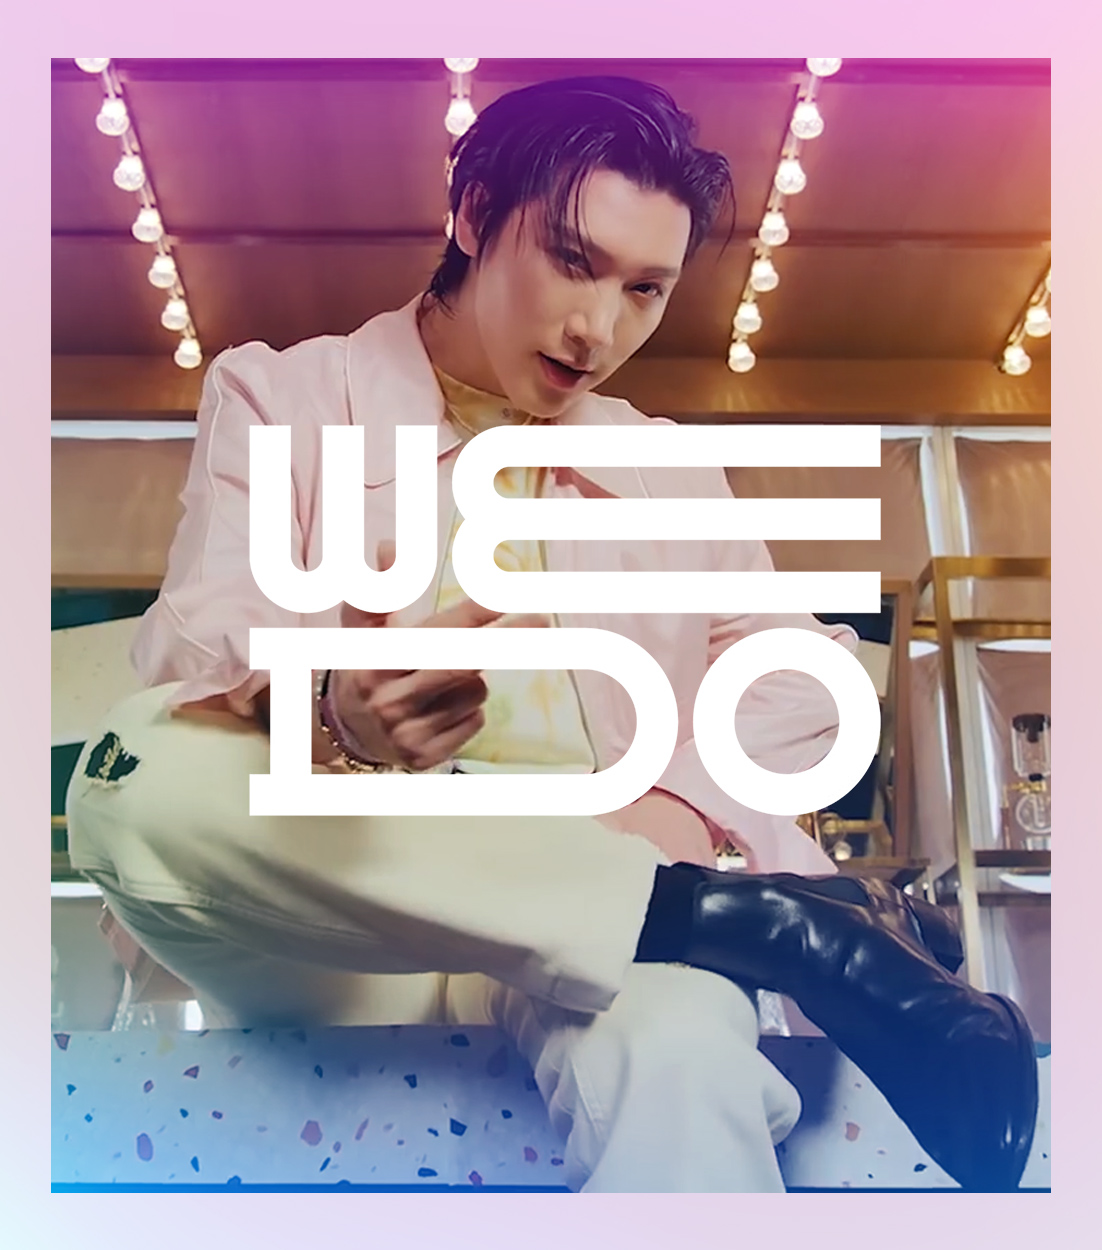 Prudential x SuperM 슈퍼엠 'We DO'